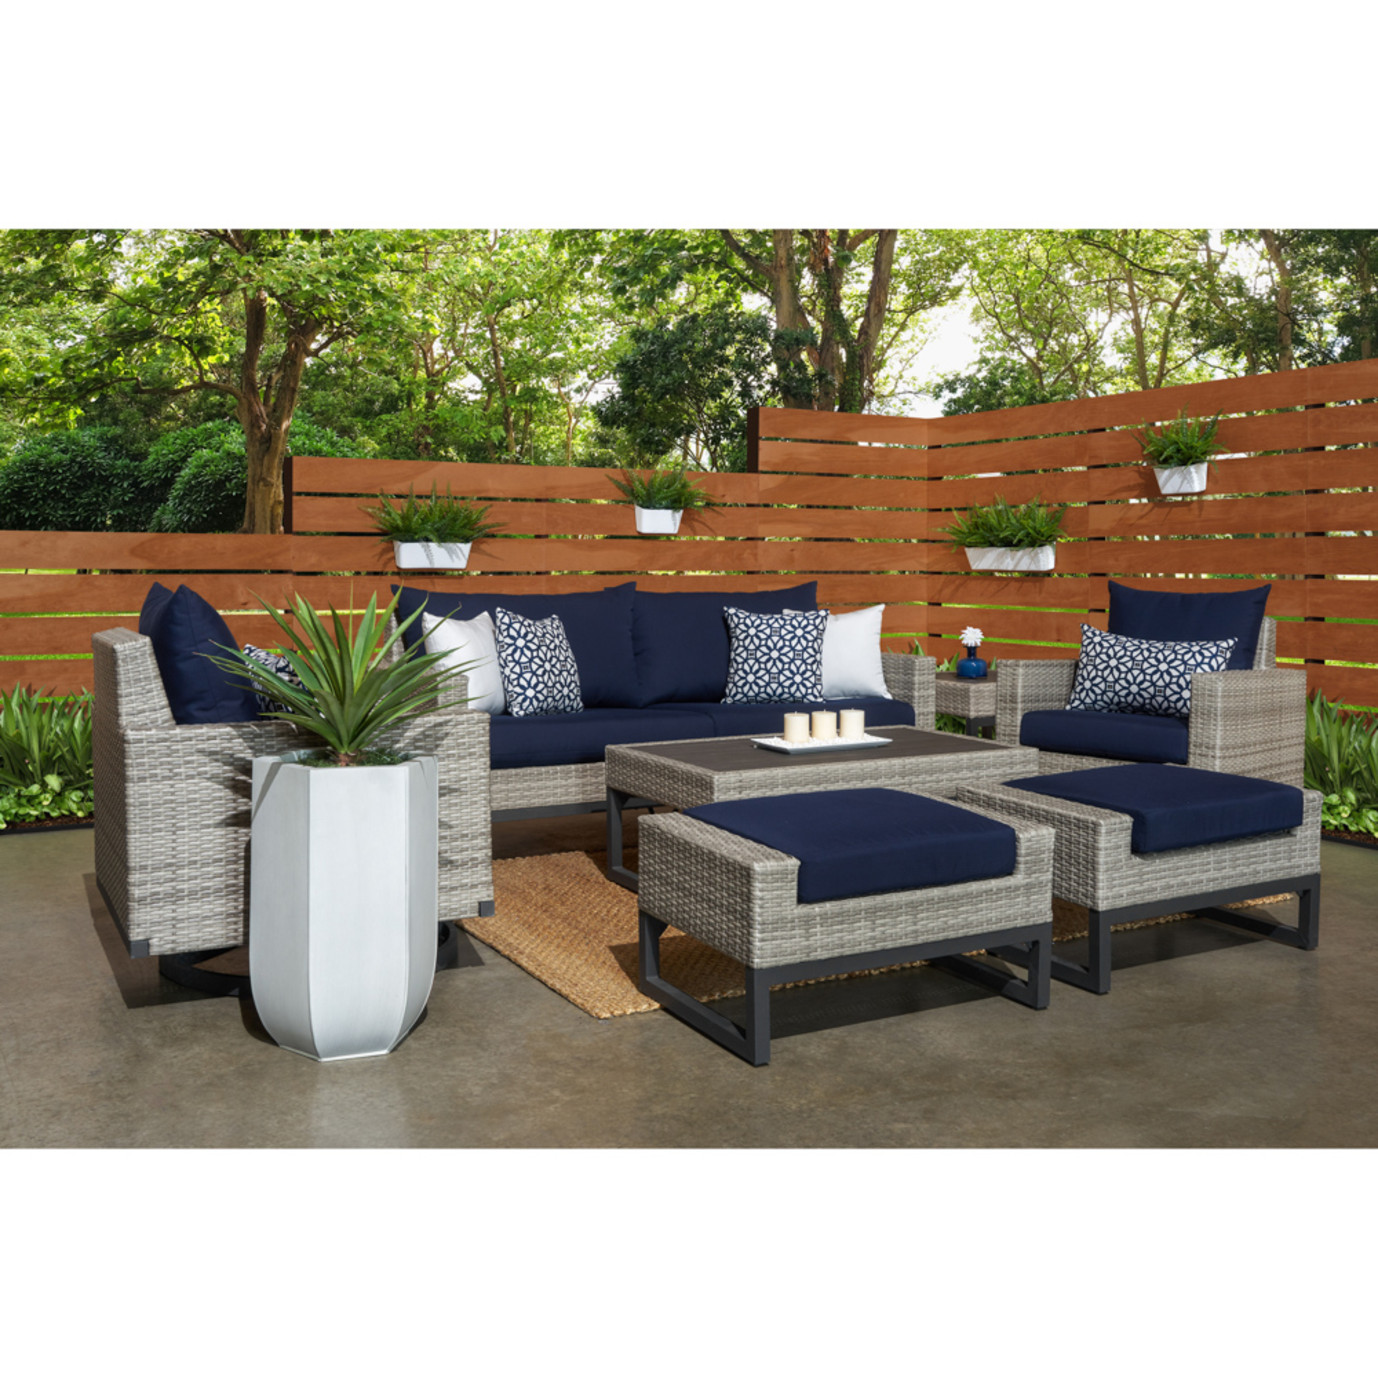 Milo™ Gray 7 Piece Motion Deep Seating Set - Navy Blue